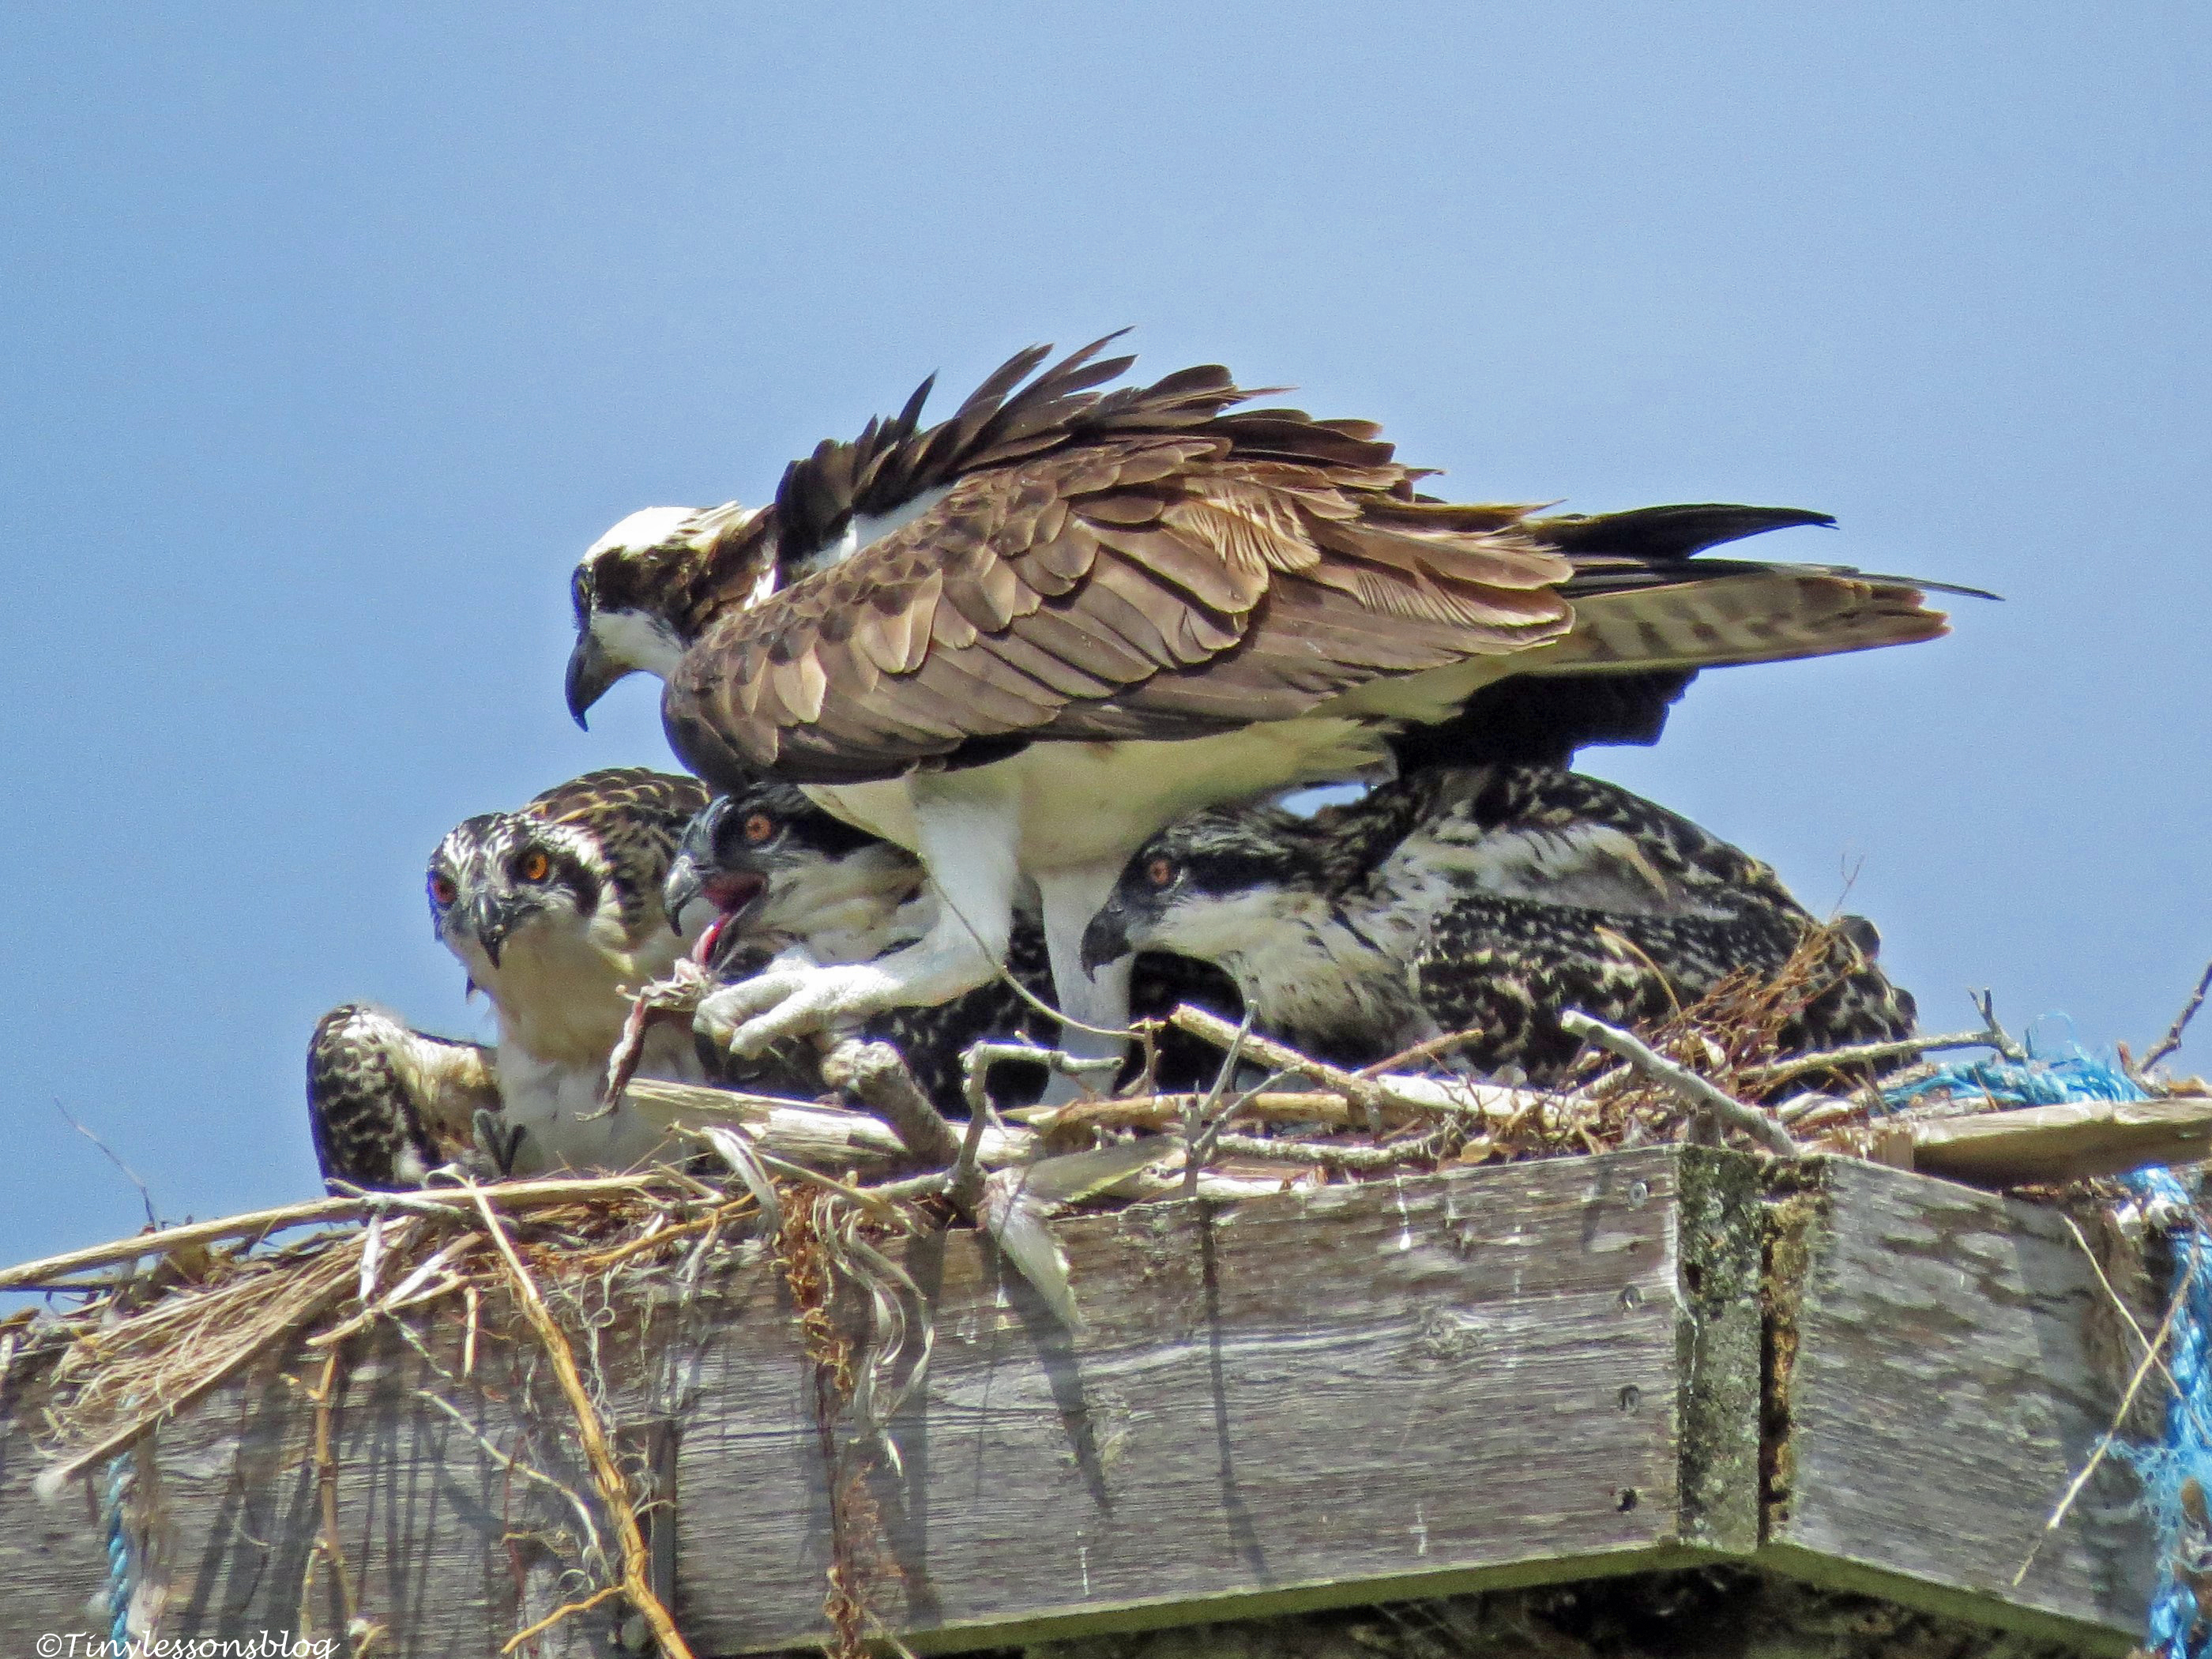 fame osprey feeding her chicks Sand Key park Clearwater Florida